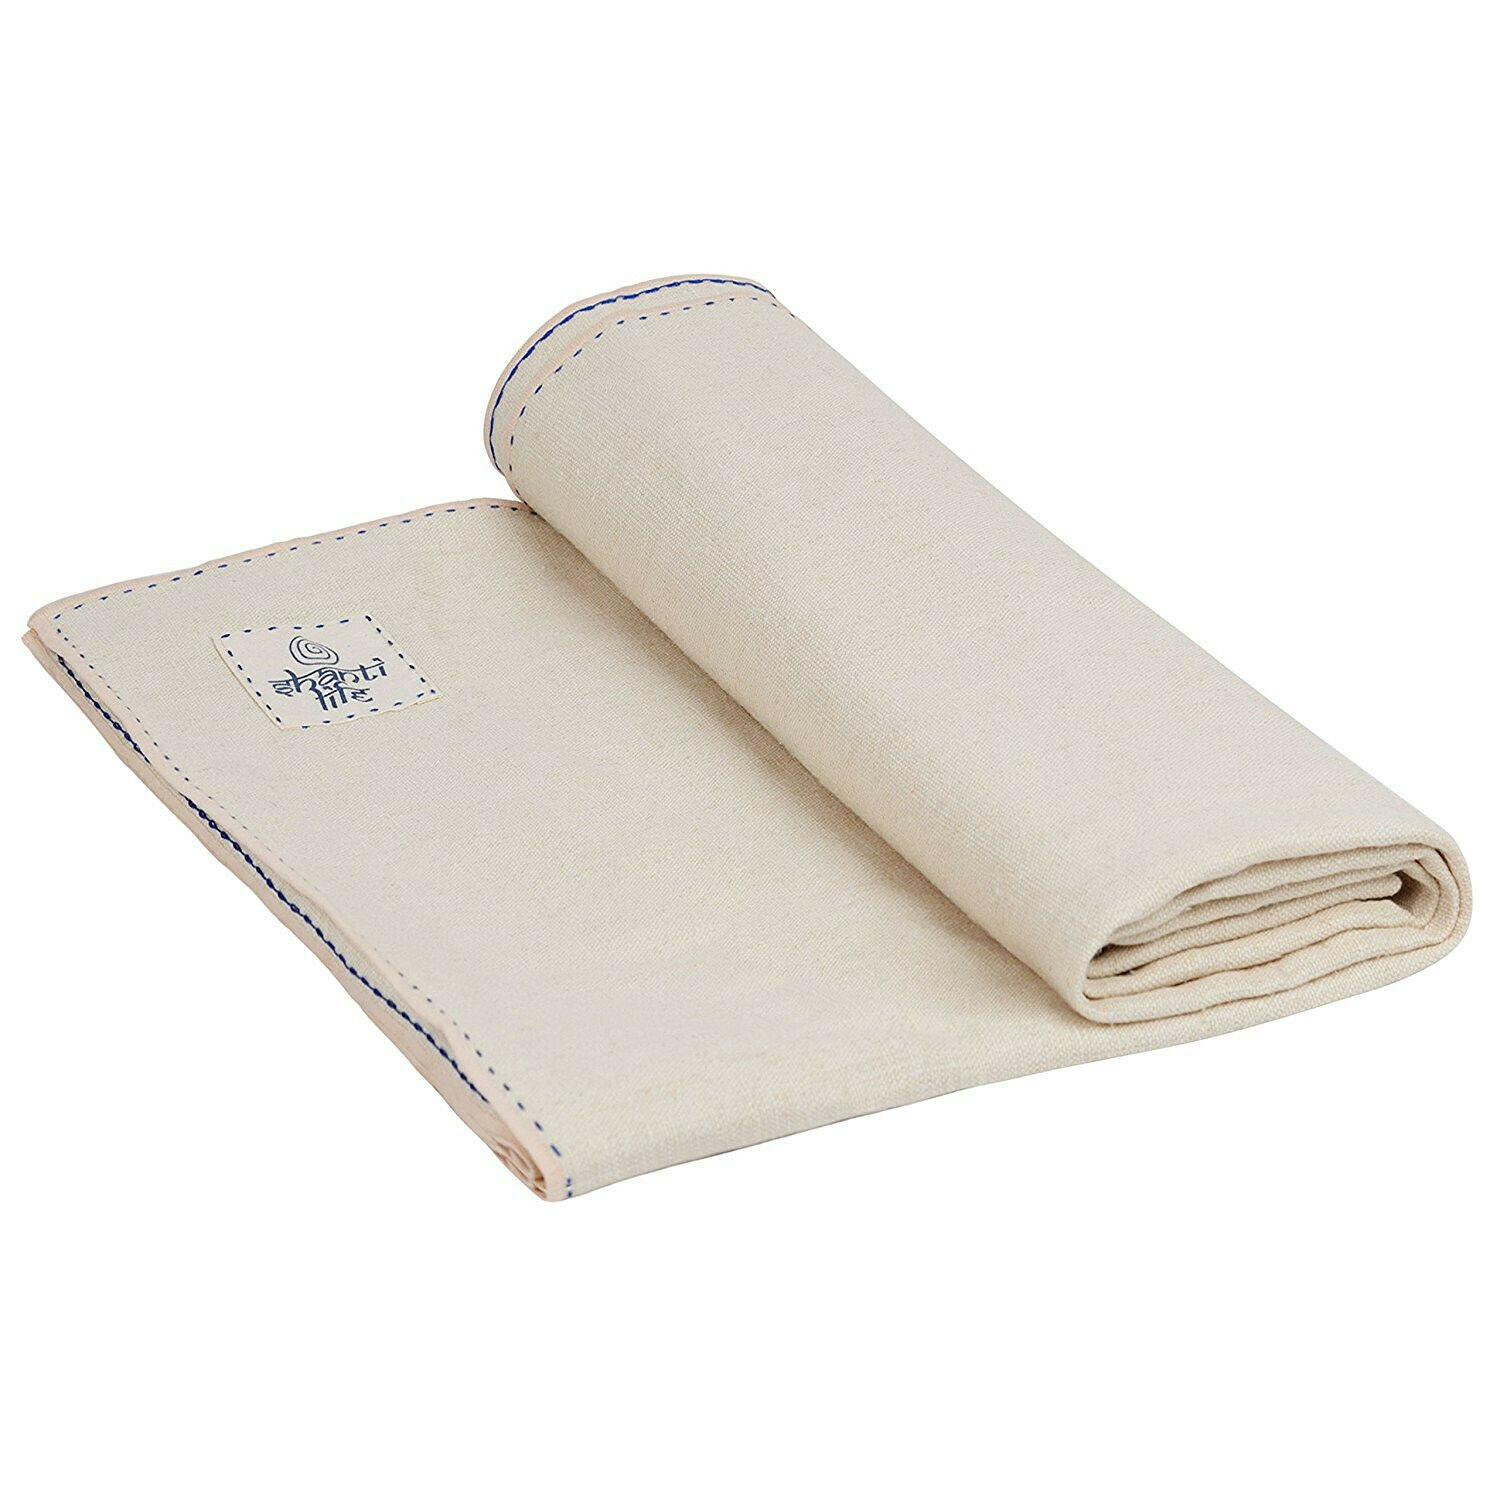 Hemp Yoga Towel, organic hemp specially woven, non slip, anti bacterial.